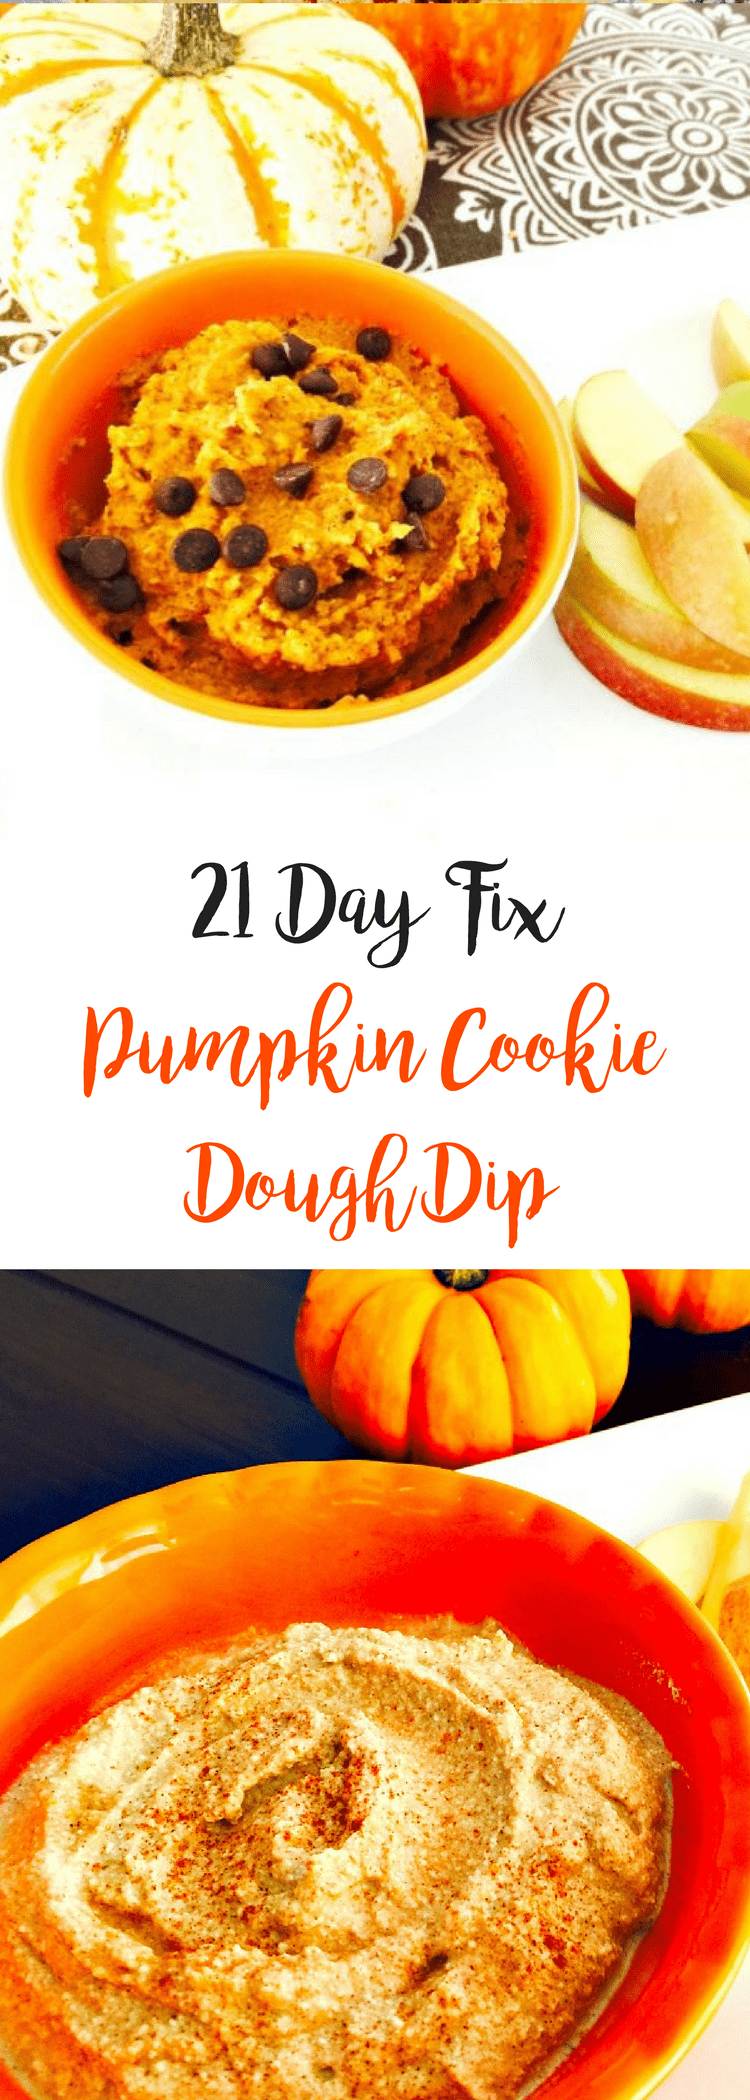 No Bake Pumpkin Cookie Dough Dip {21 Day Fix} | Confessions of a Fit Foodie